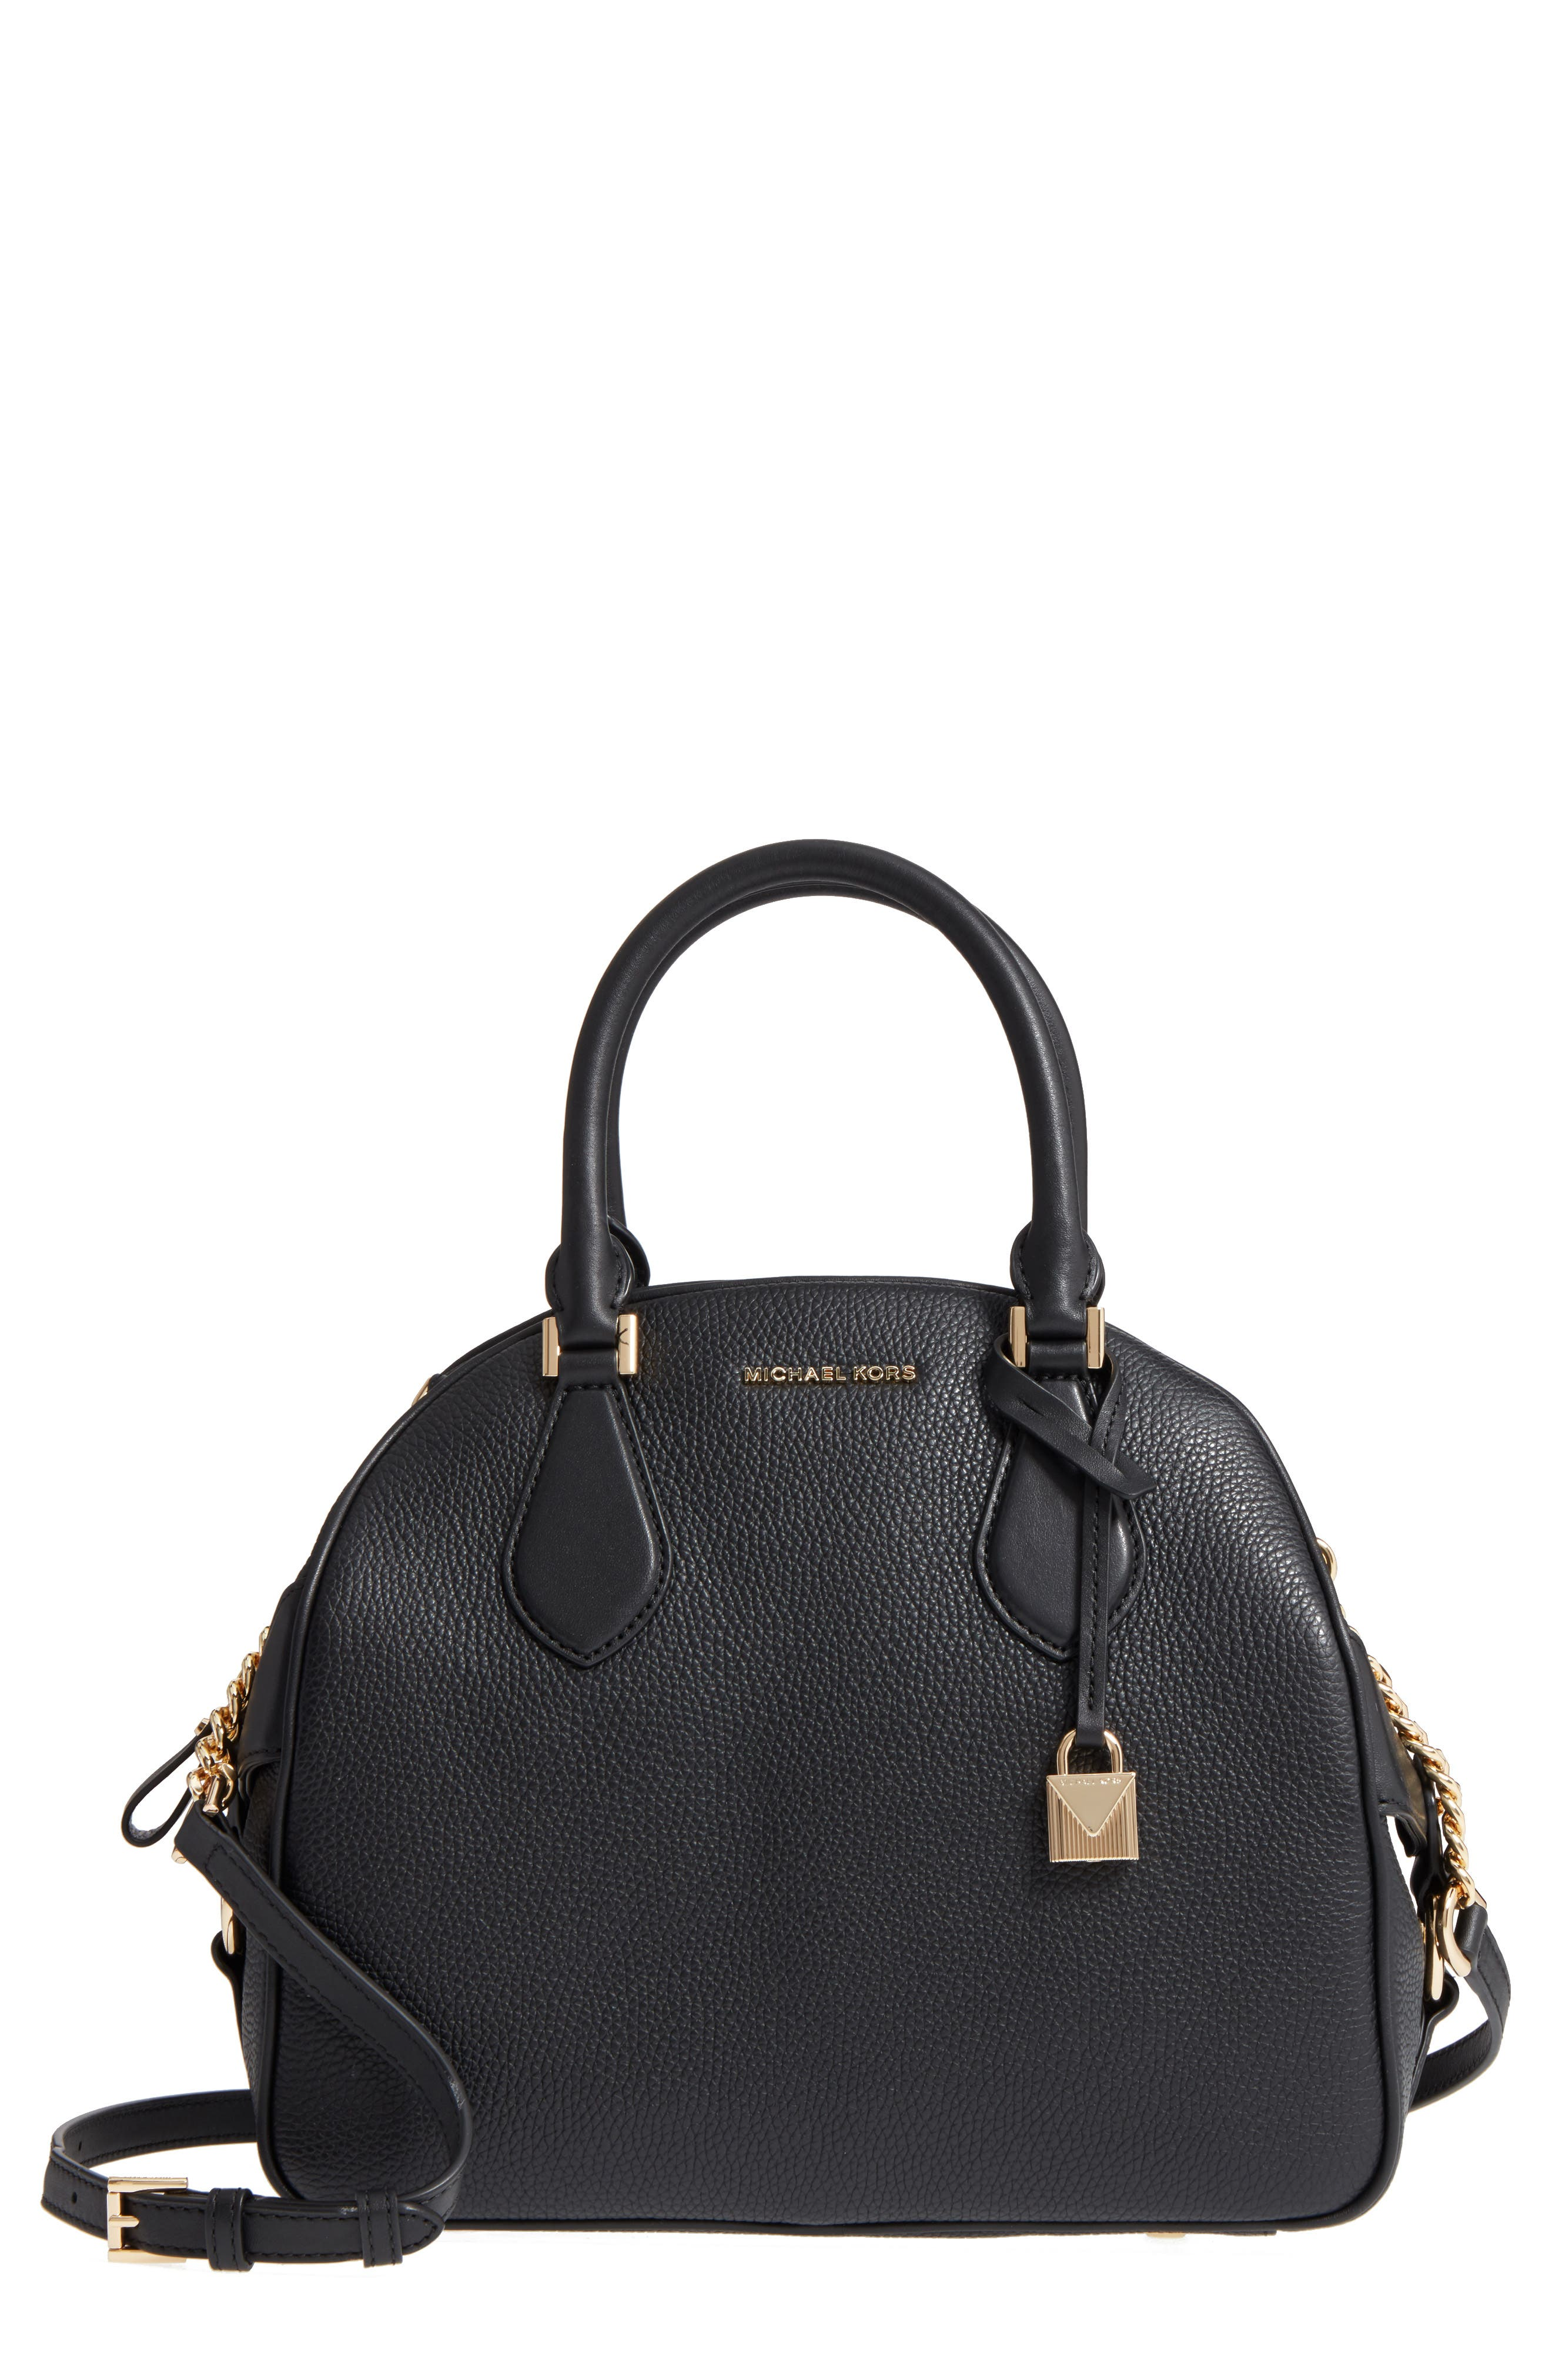 MICHAEL Michael Kors Large Briar Leather Satchel